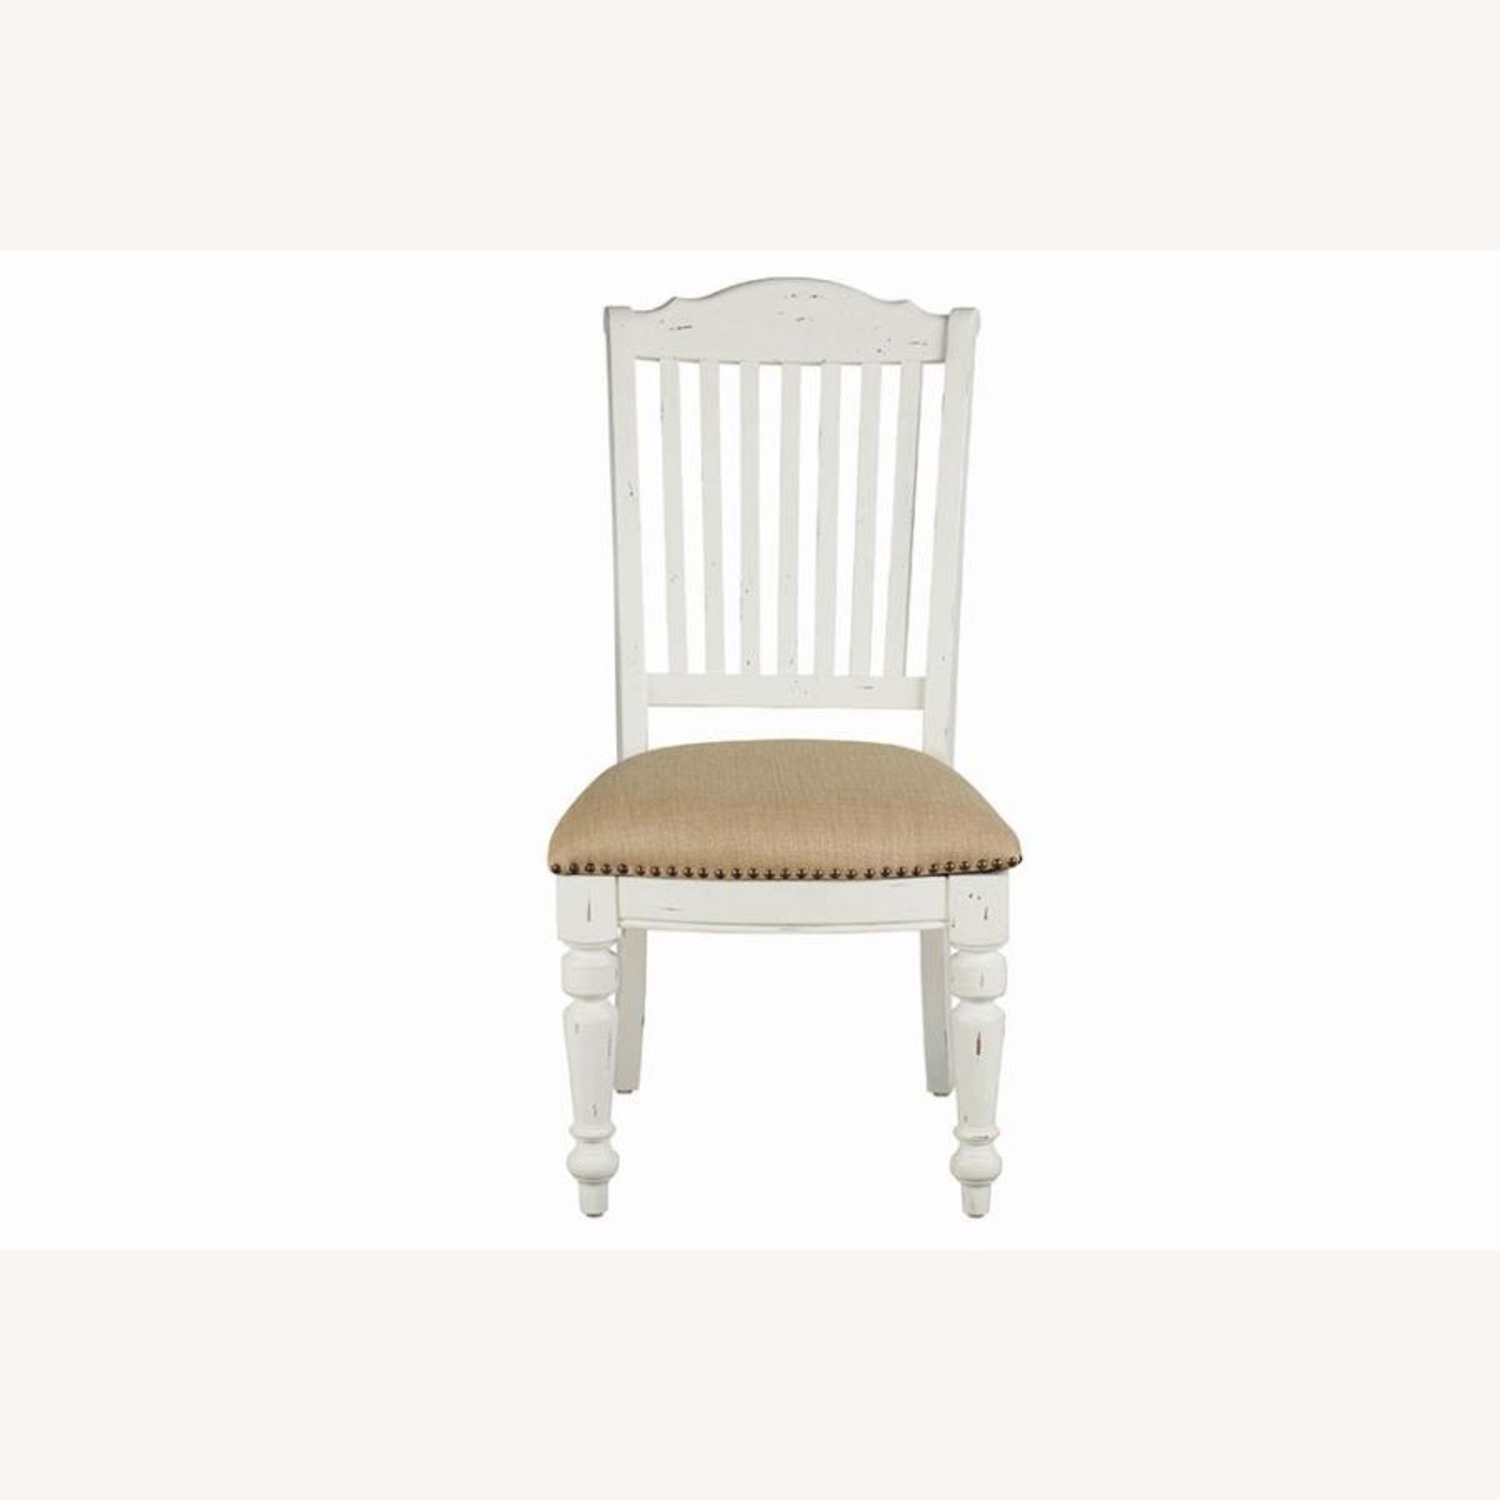 Rustic Farmhouse Style Side Chair In White Finish - image-1